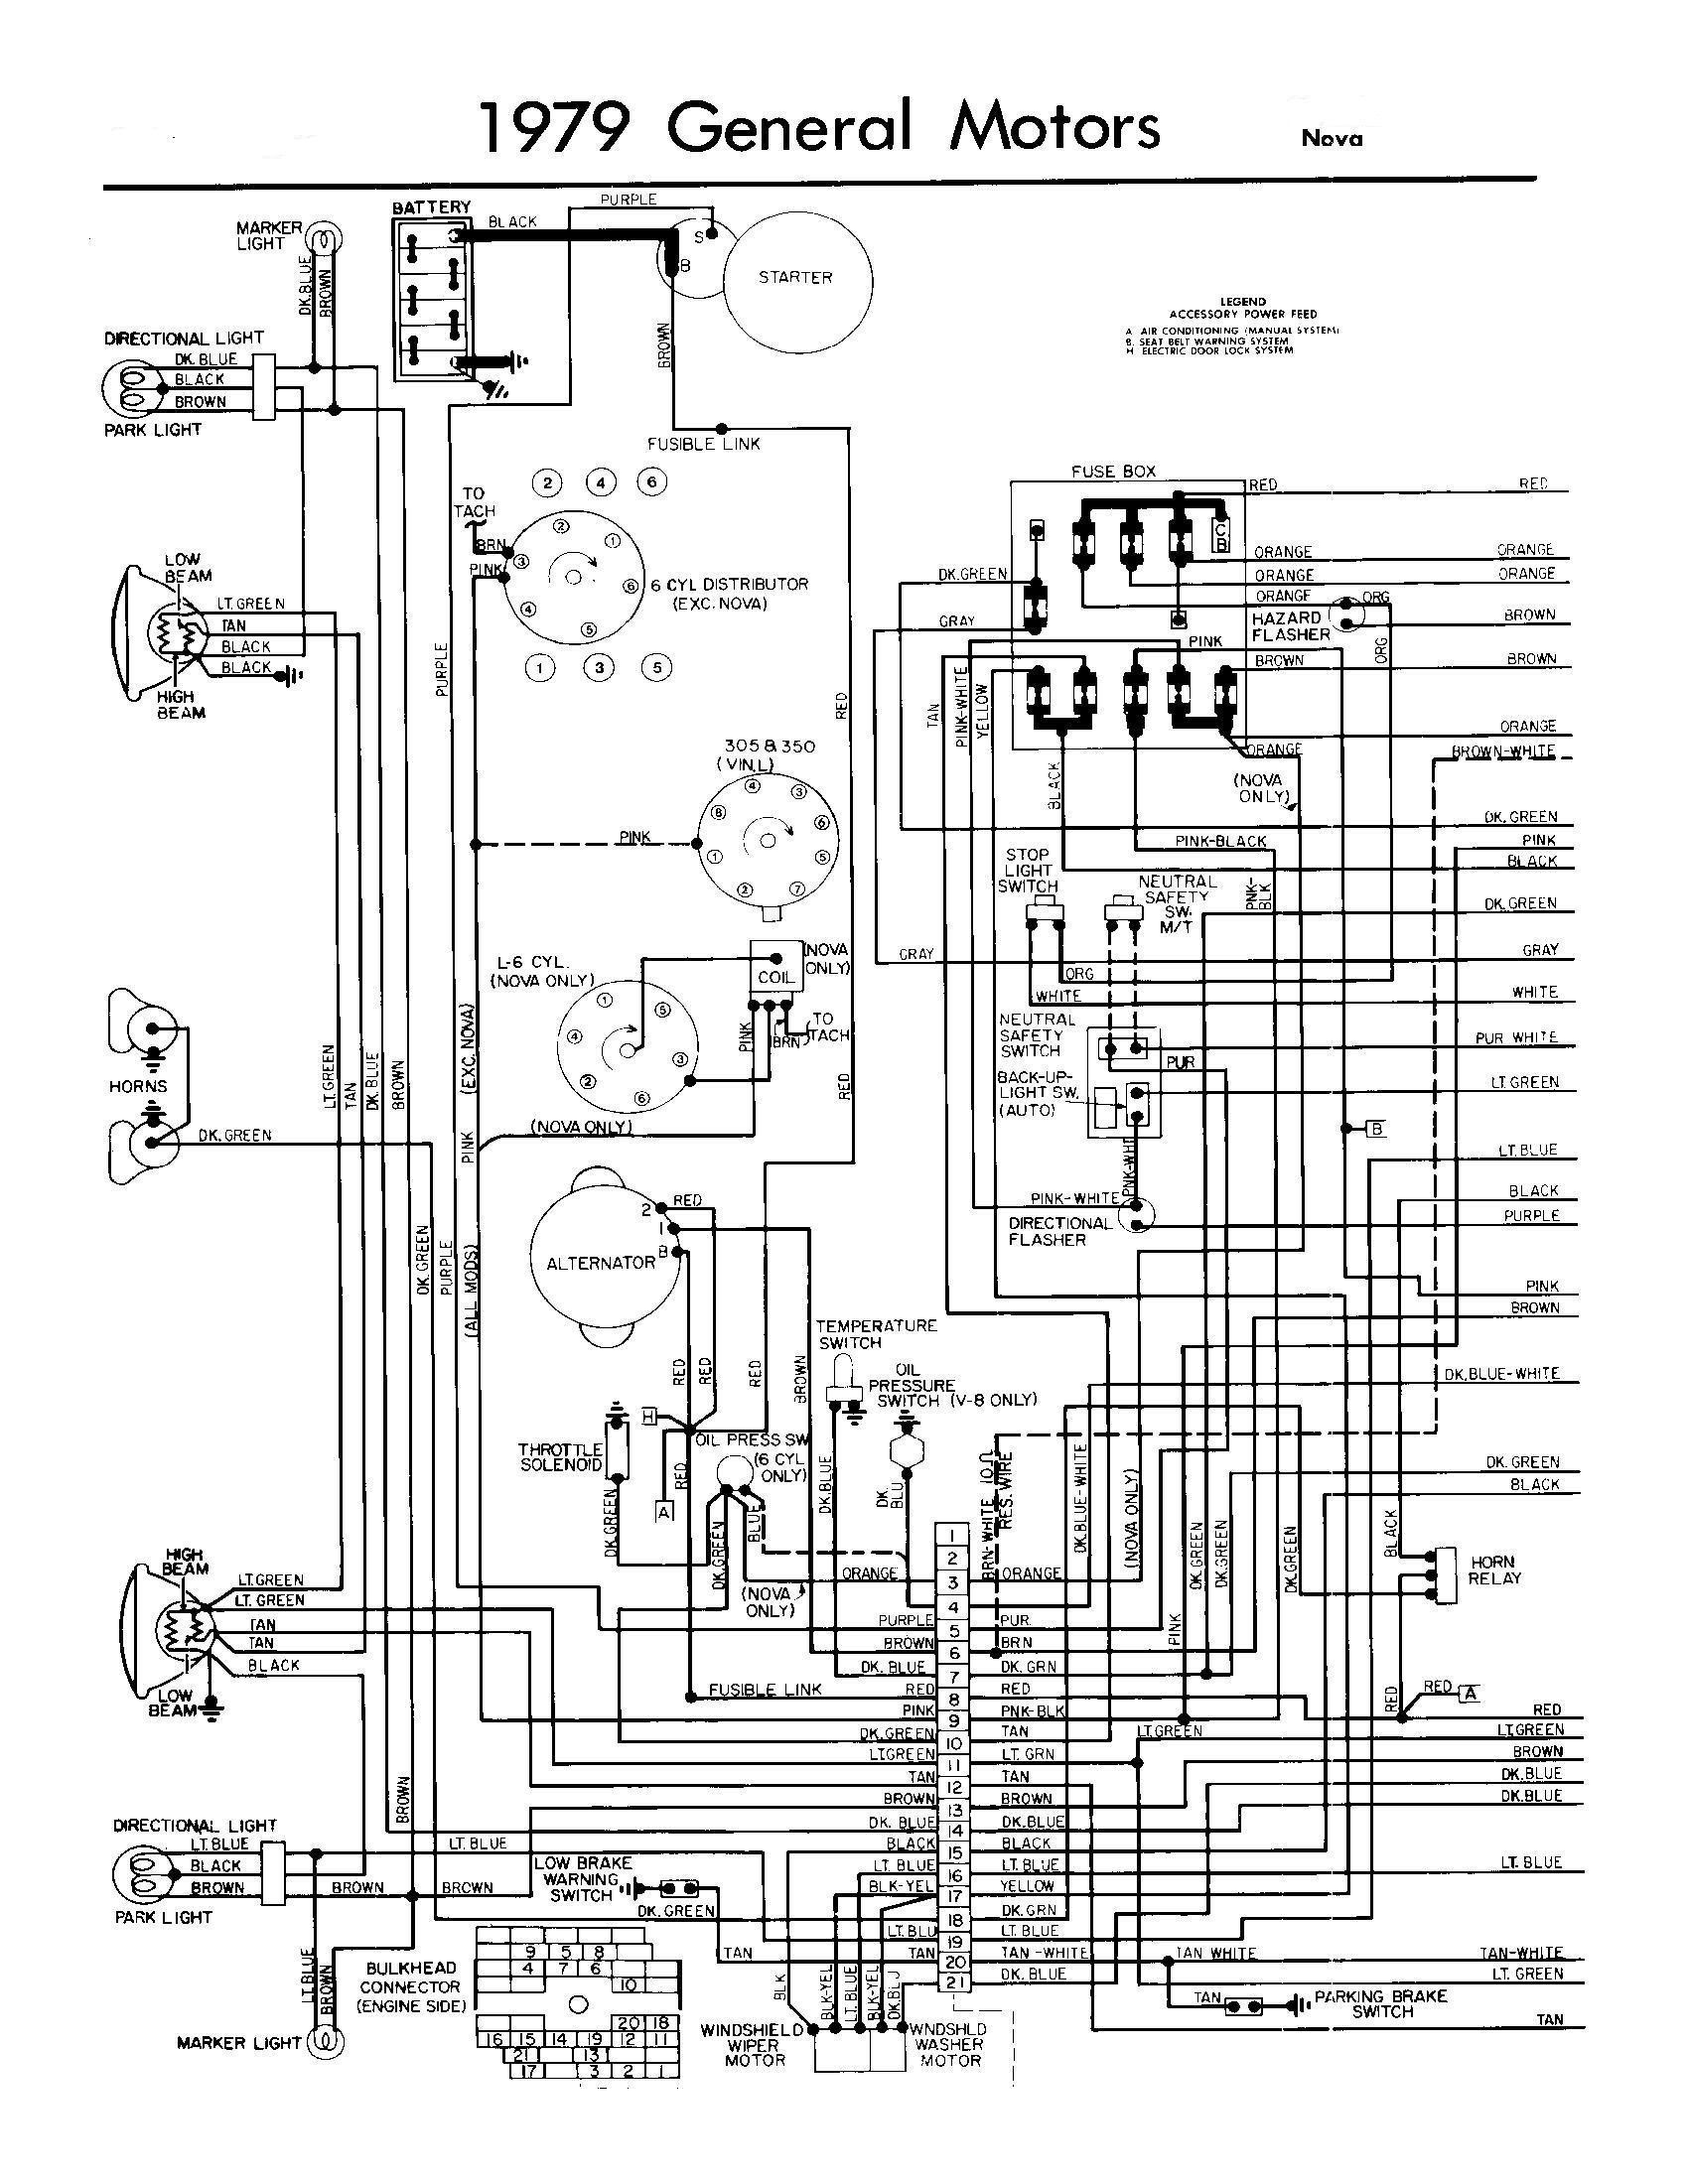 1978 nova wiring diagram schematics wiring diagrams u2022 rh seniorlivinguniversity co